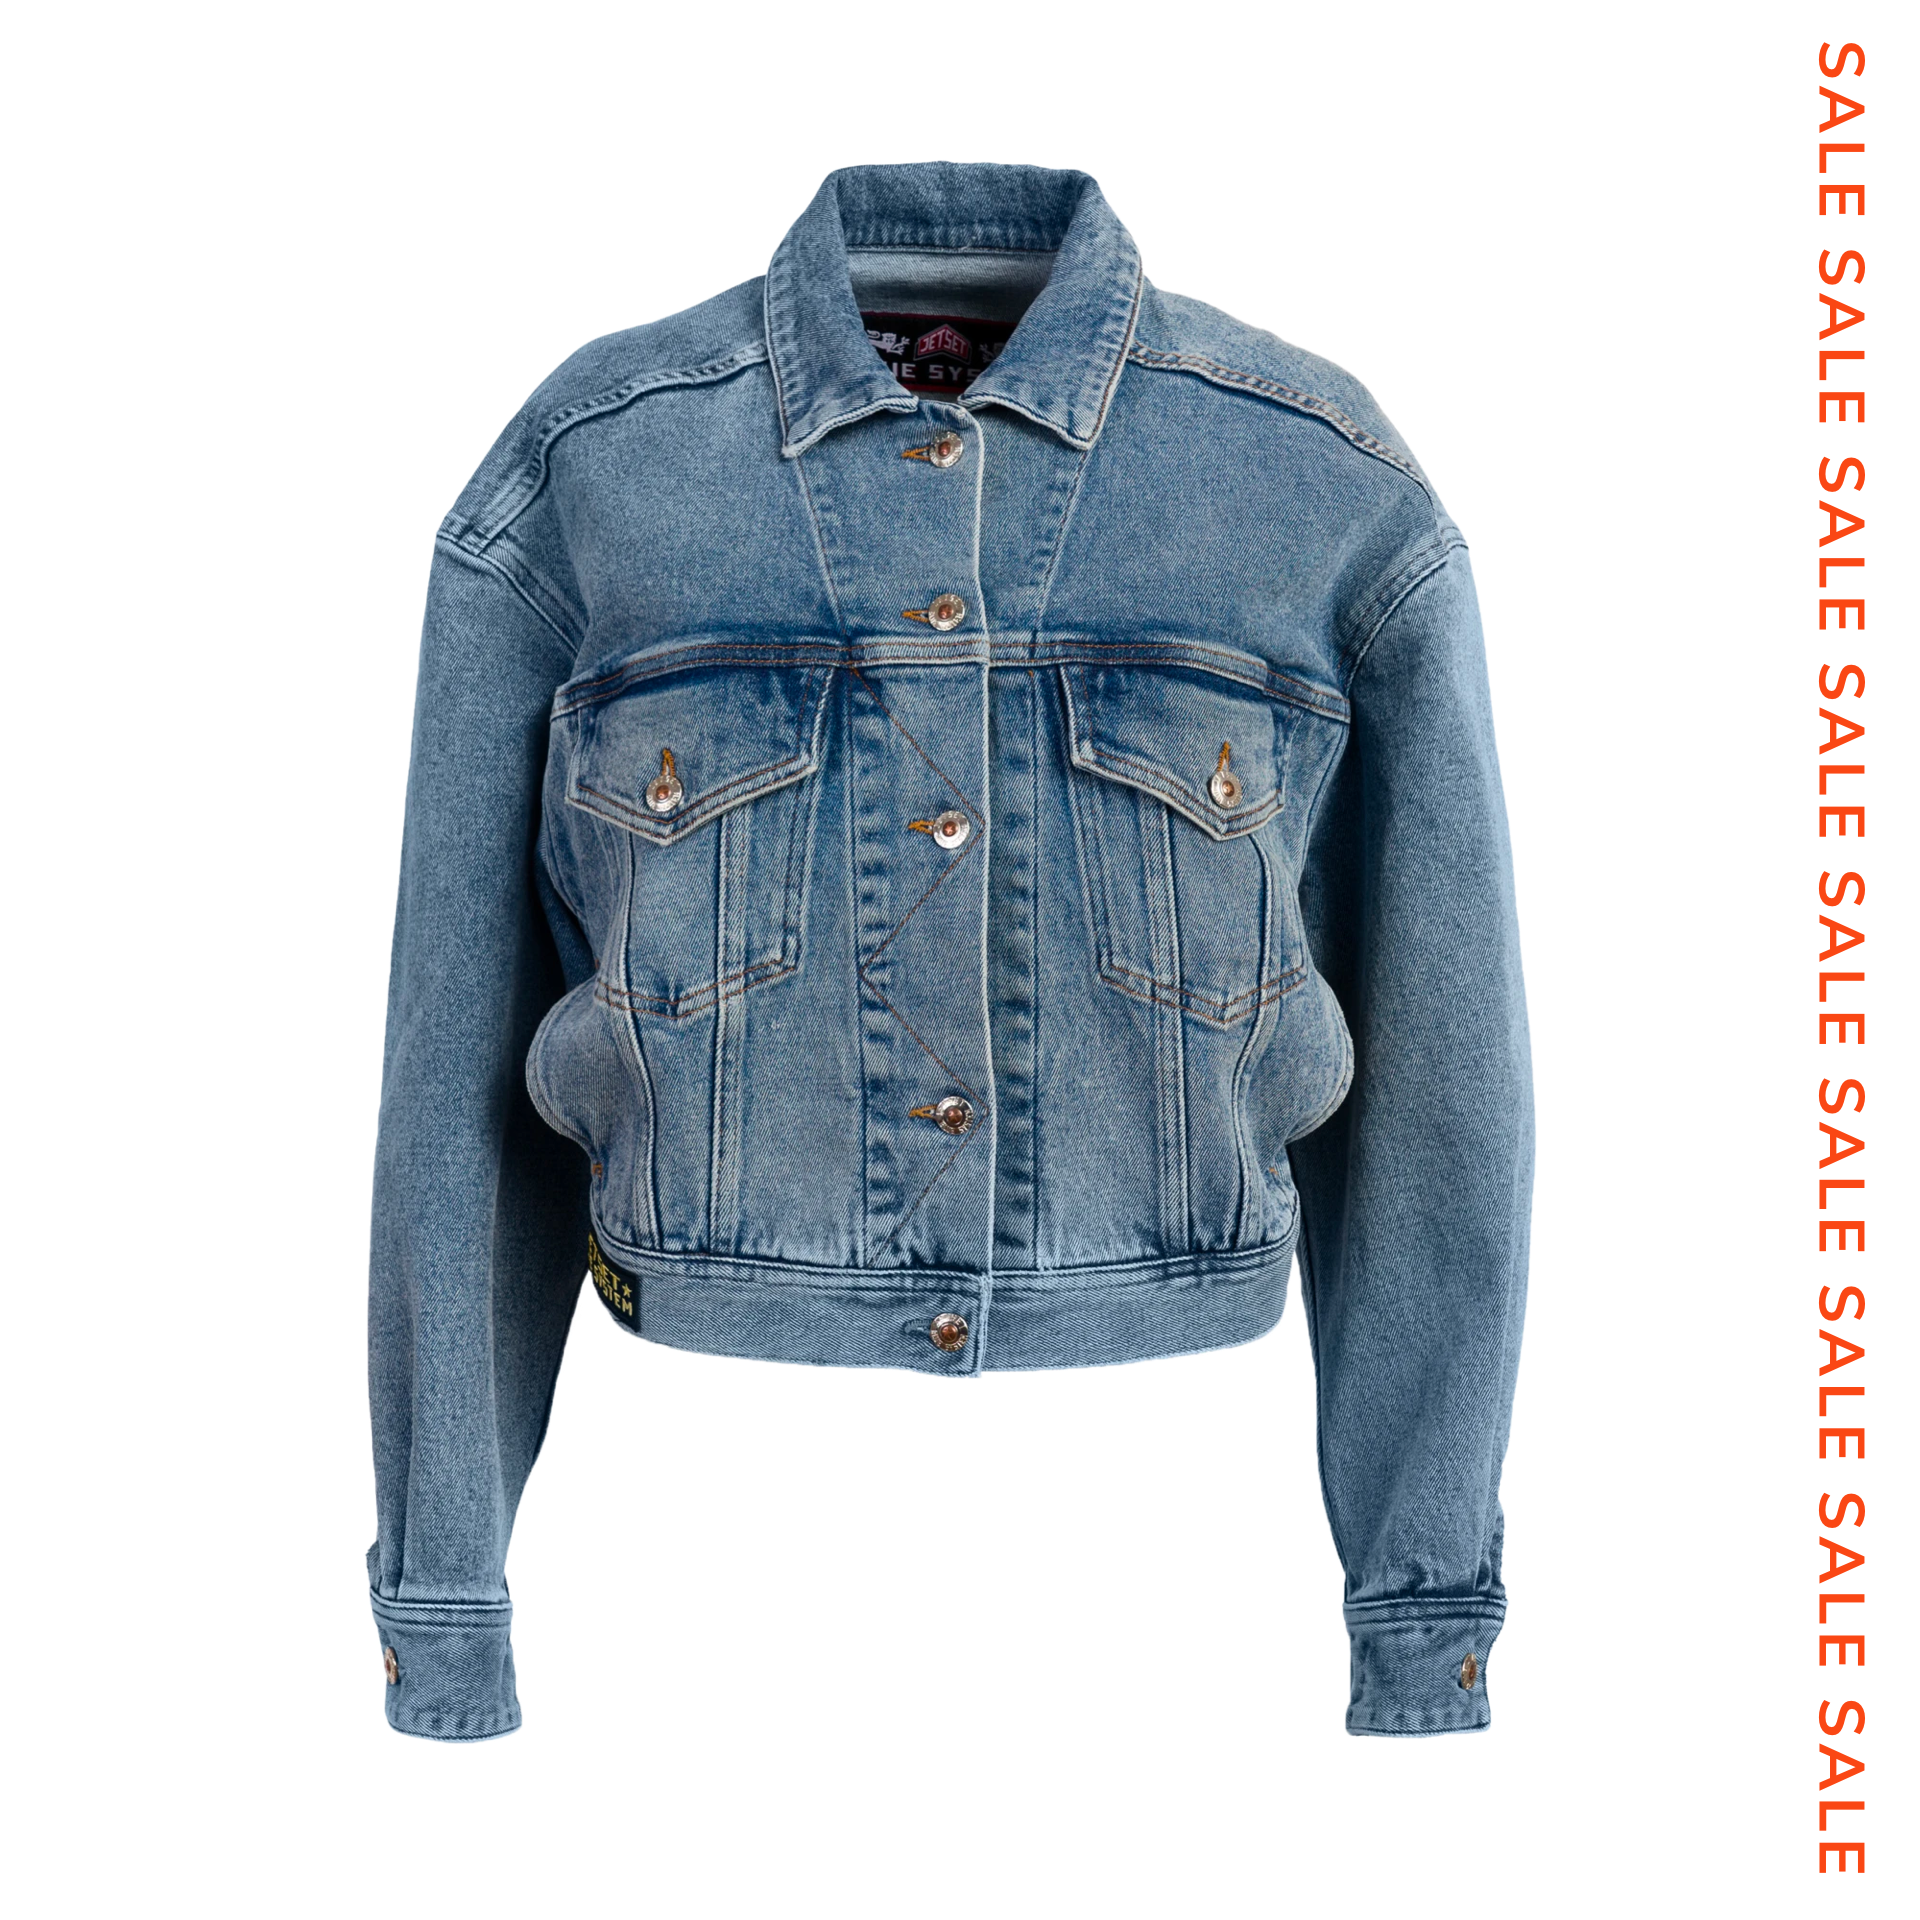 Denim Women's Jacket